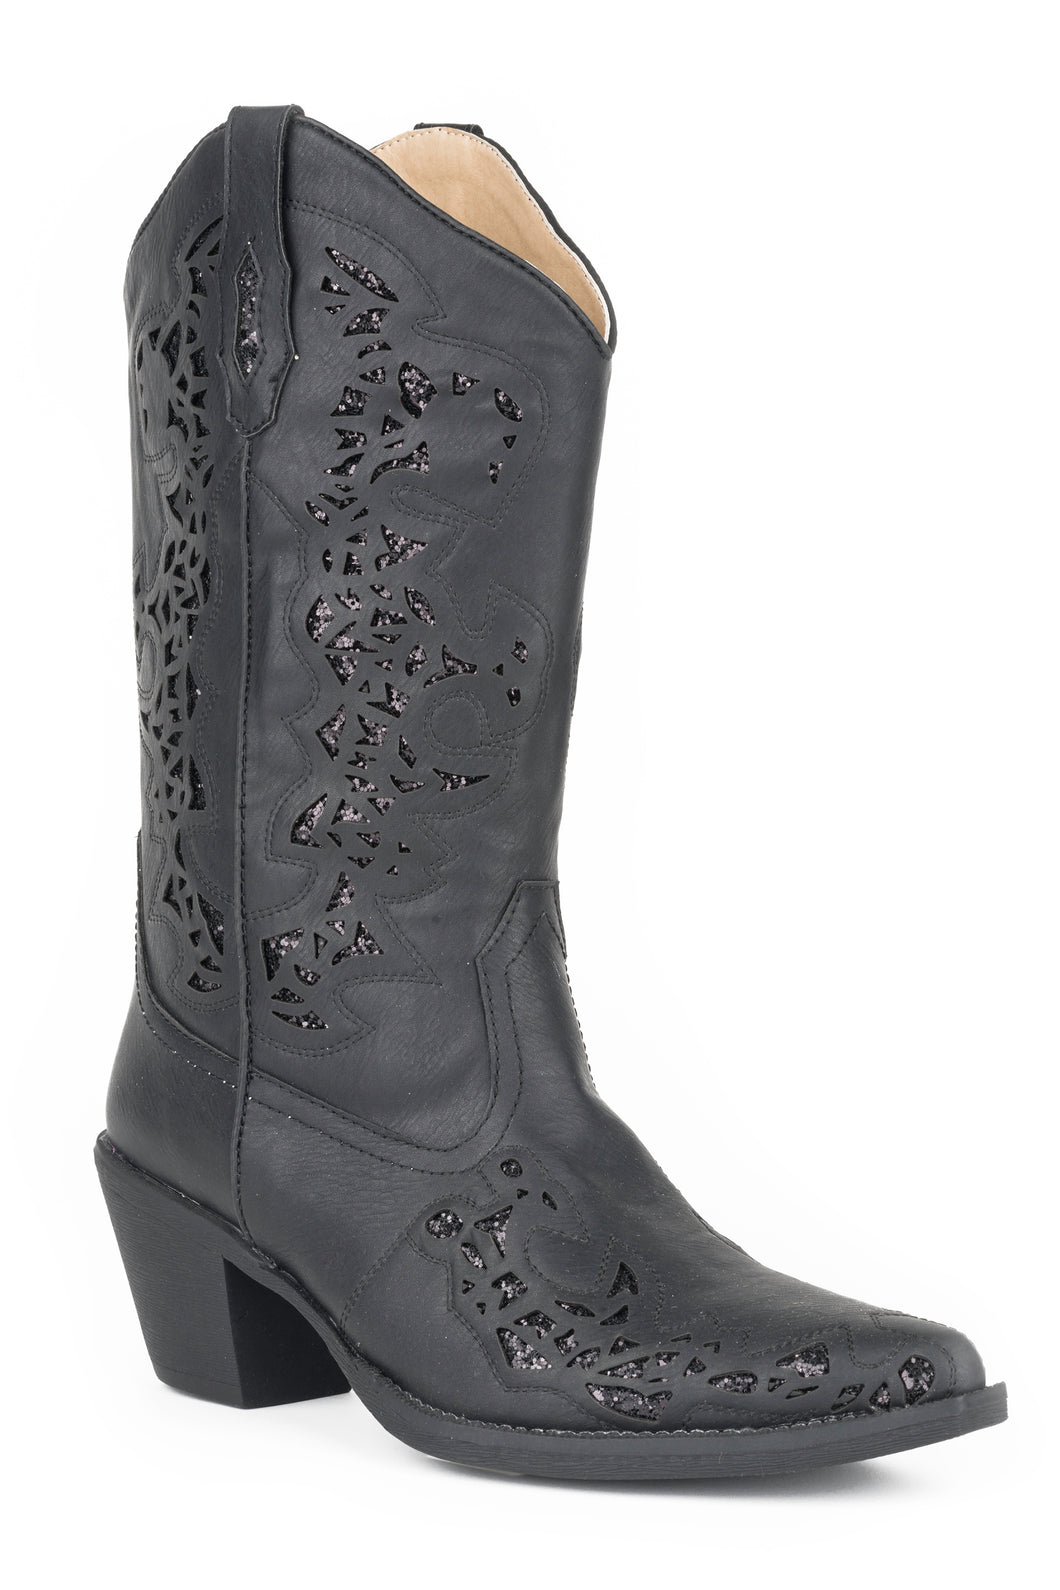 Alisa Boot Womens Boots Black Faux Leather Metallic Underlay